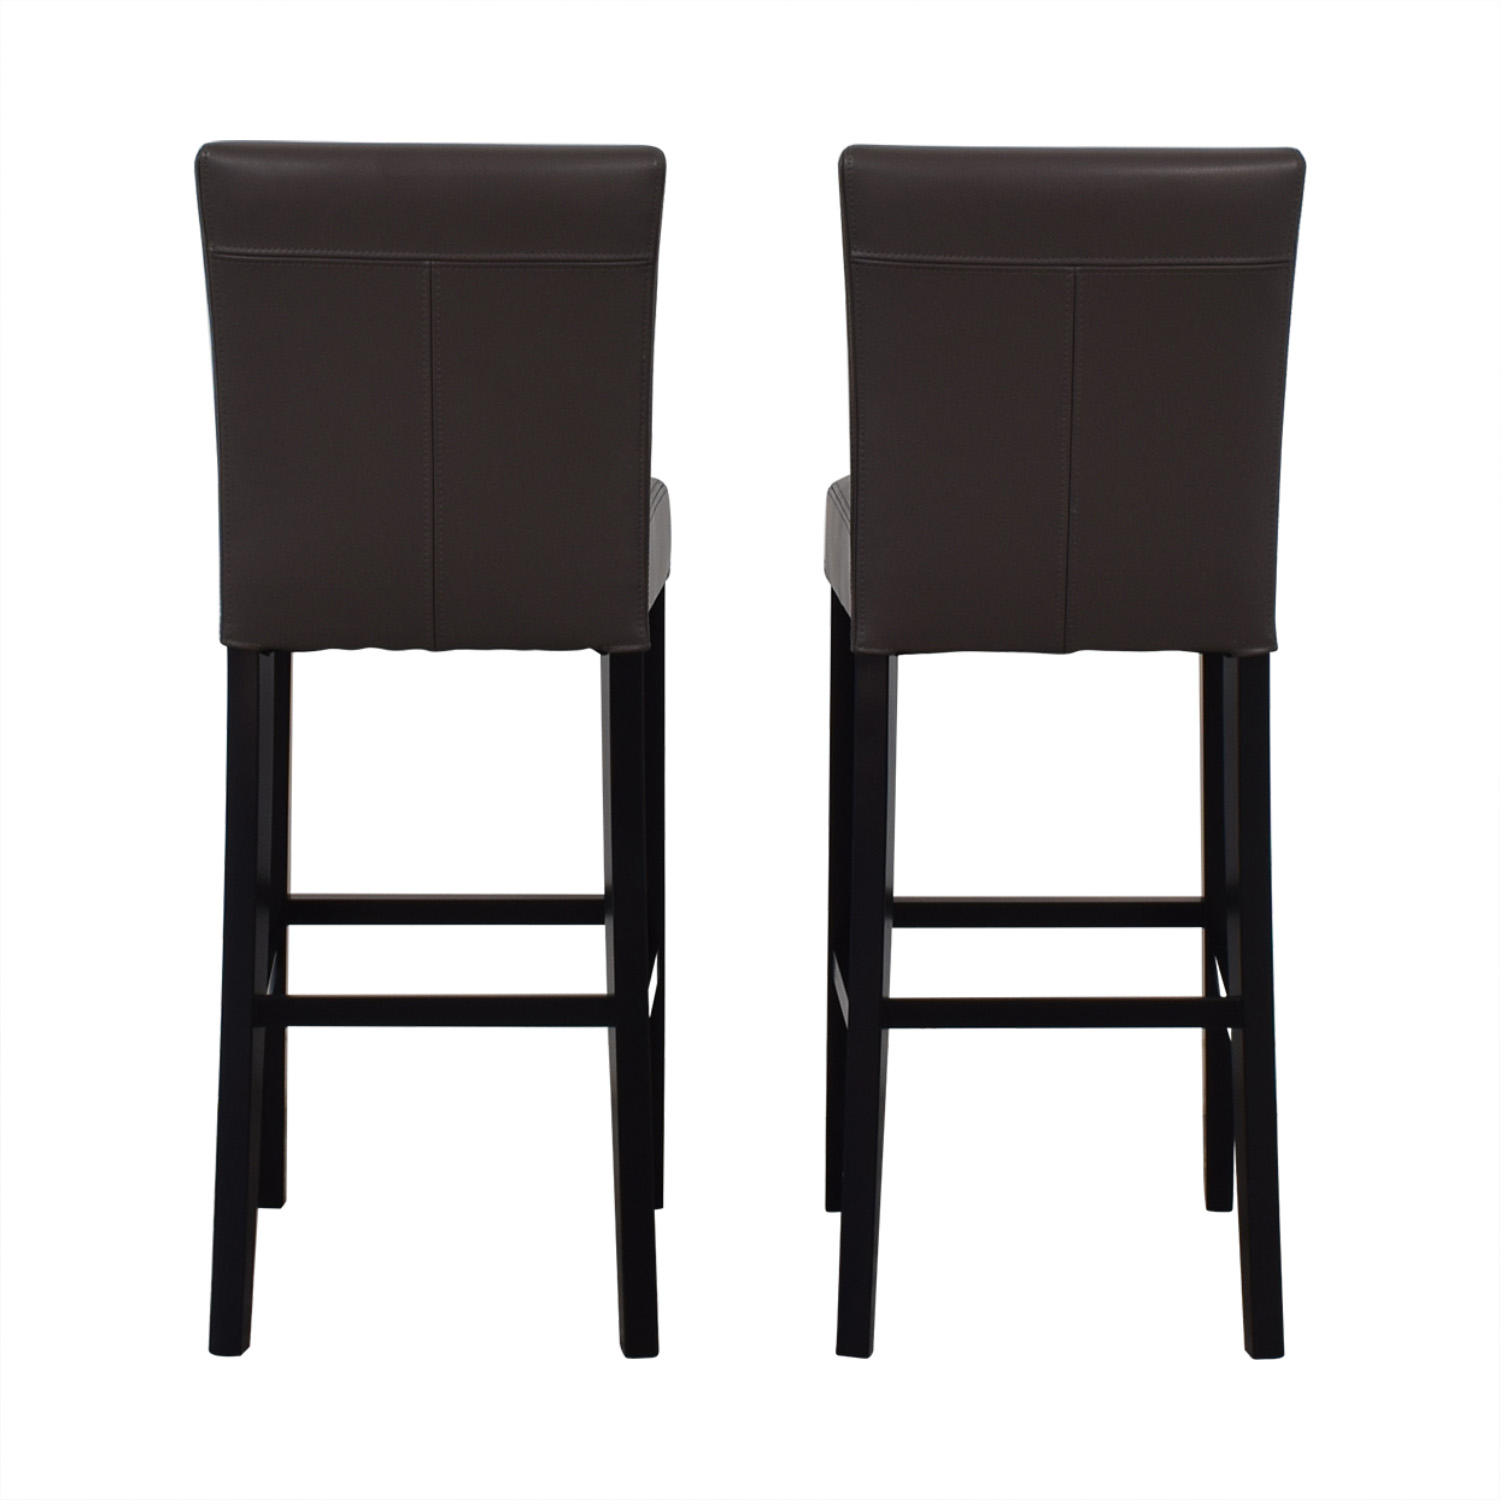 shop Crate & Barrel Crate & Barrel Lowe Smoke Leather Bar Stools online